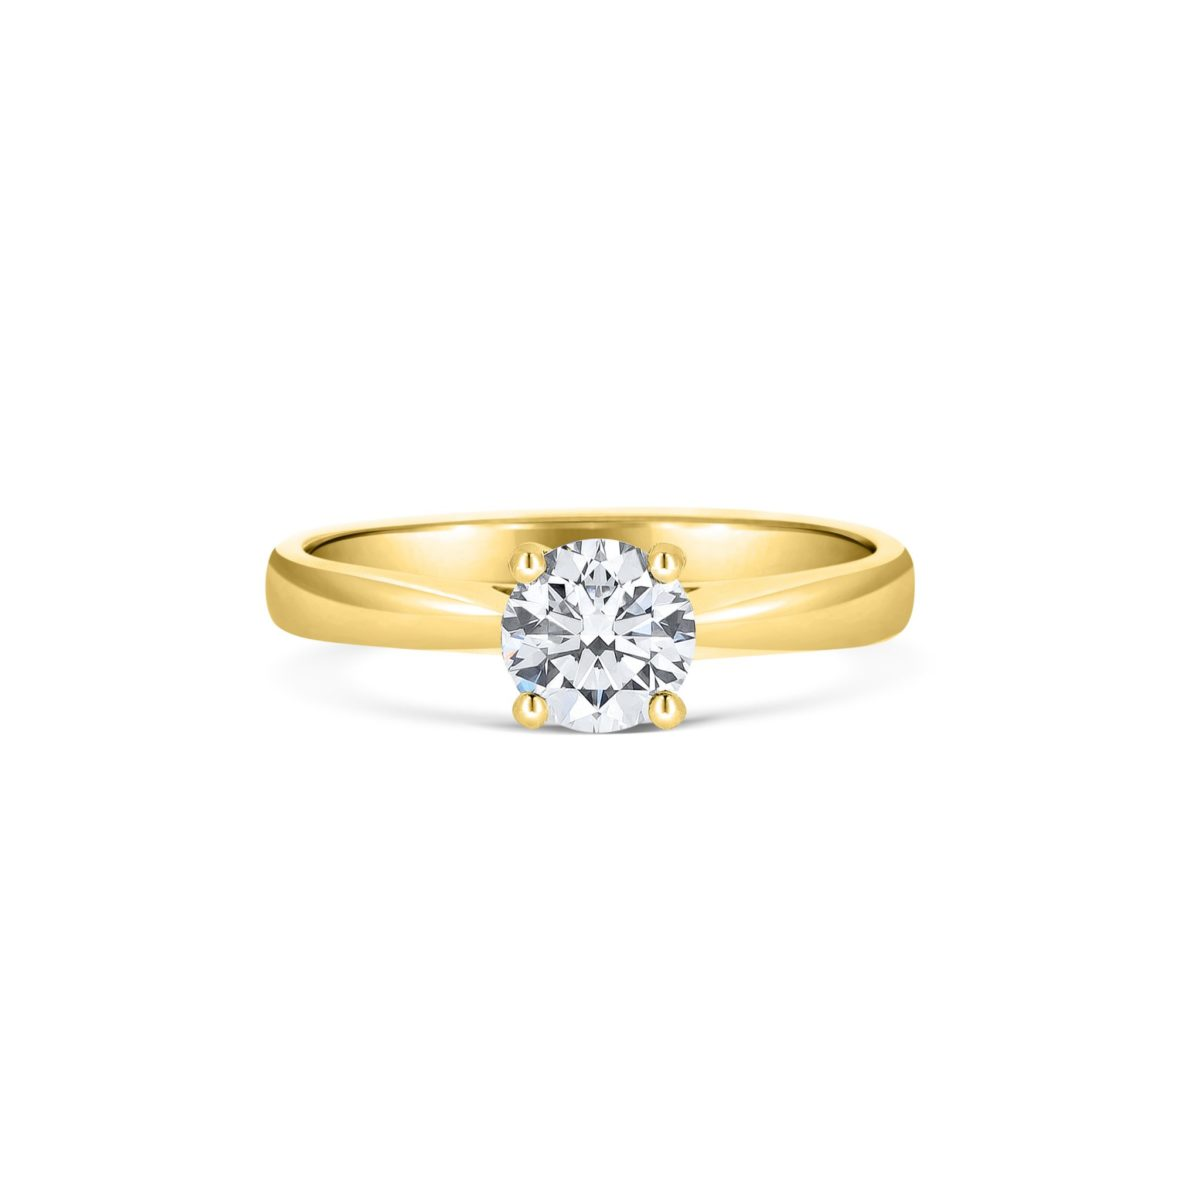 Lucida Single Stone Gold Engagement Ring - 4 Claws